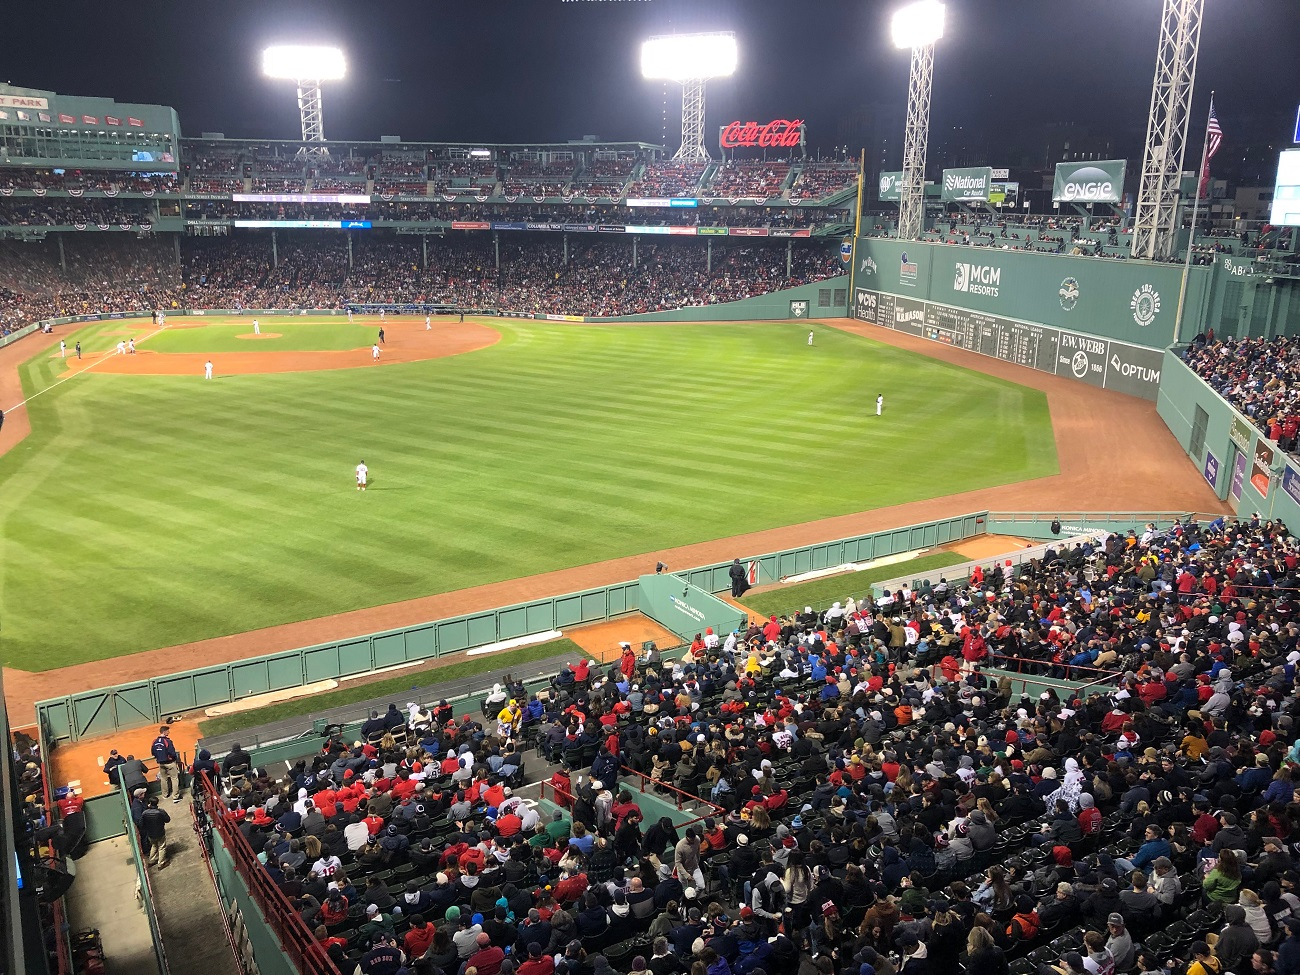 Upper View of Fenway Park